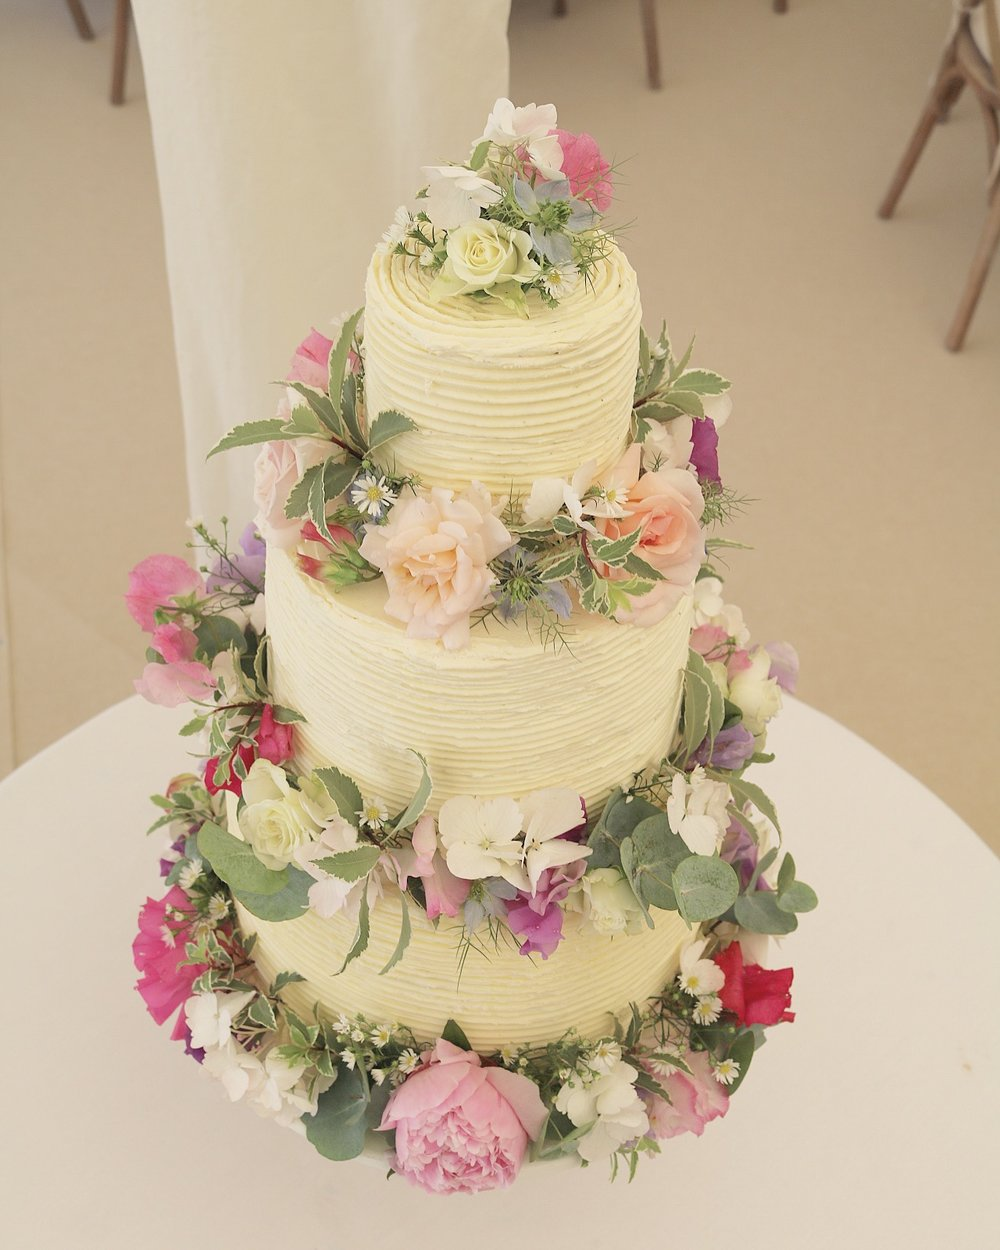 Wedding Cakes — THE HAZLEBURY KITCHEN